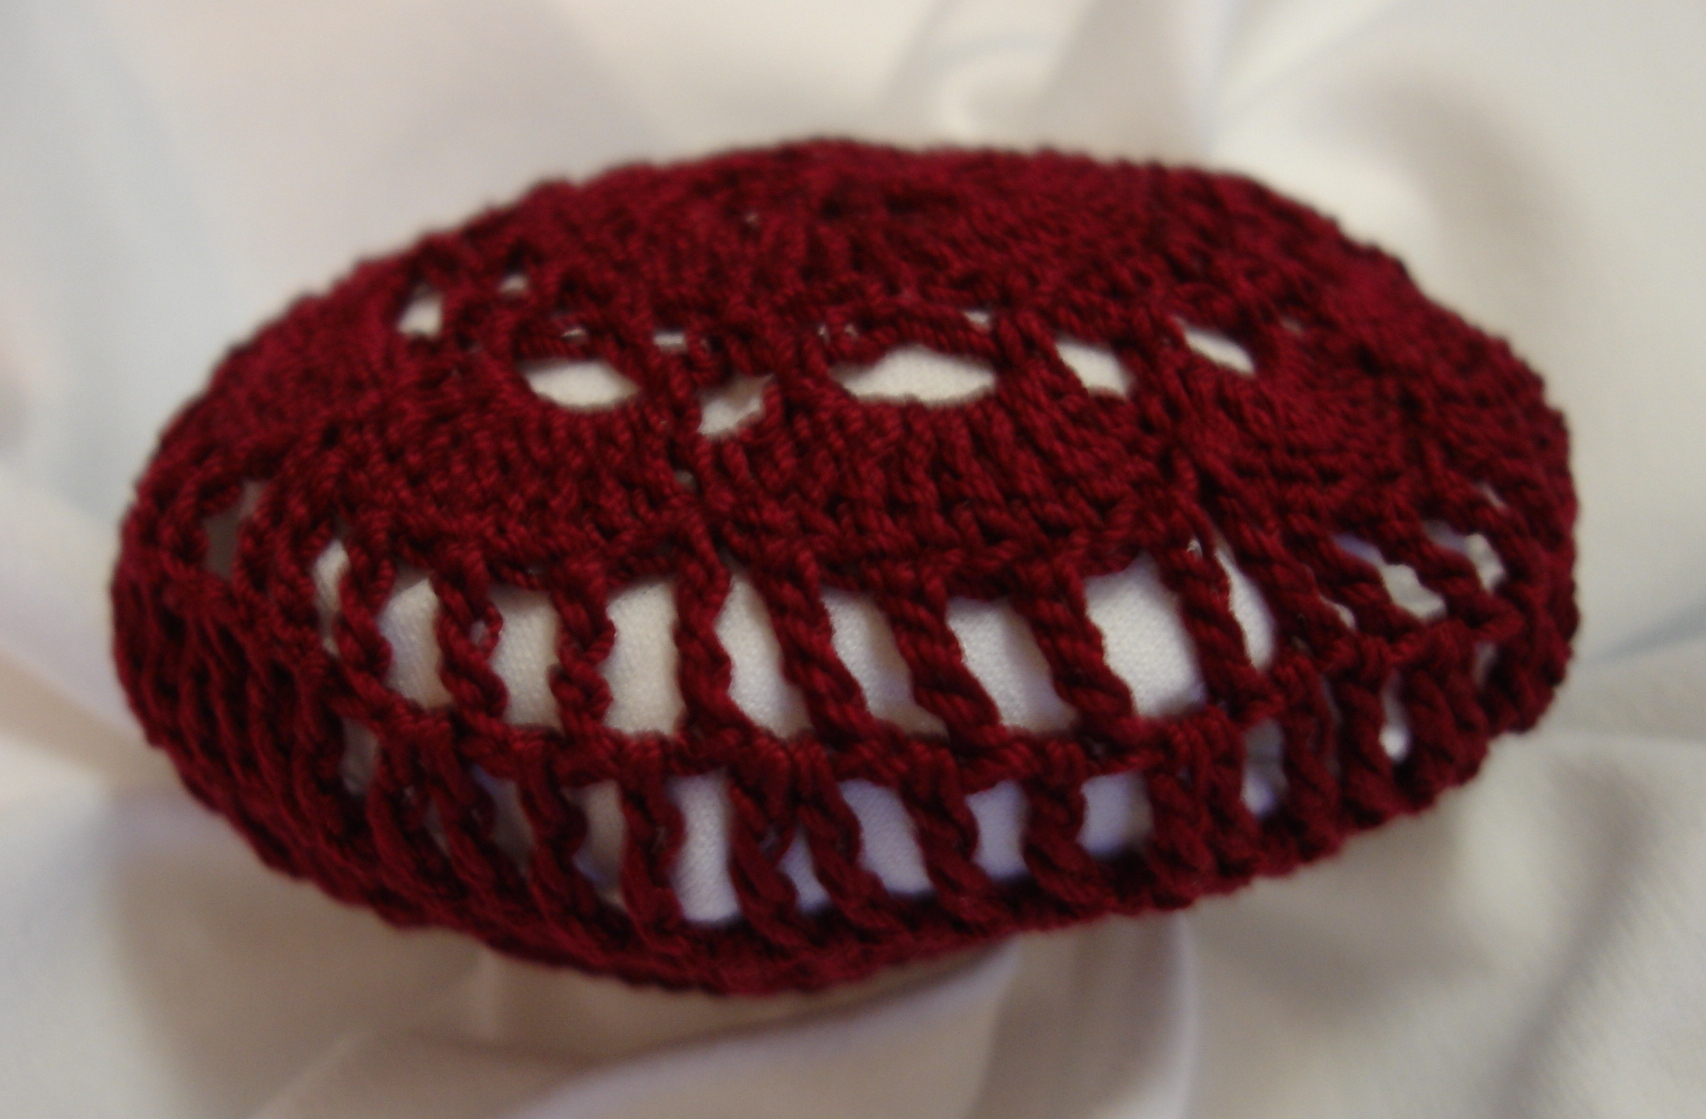 Crochet Hair In A Bun : Burgundy Crocheted Hair Net Bun Cover Amish Mennonite merrydeals4u